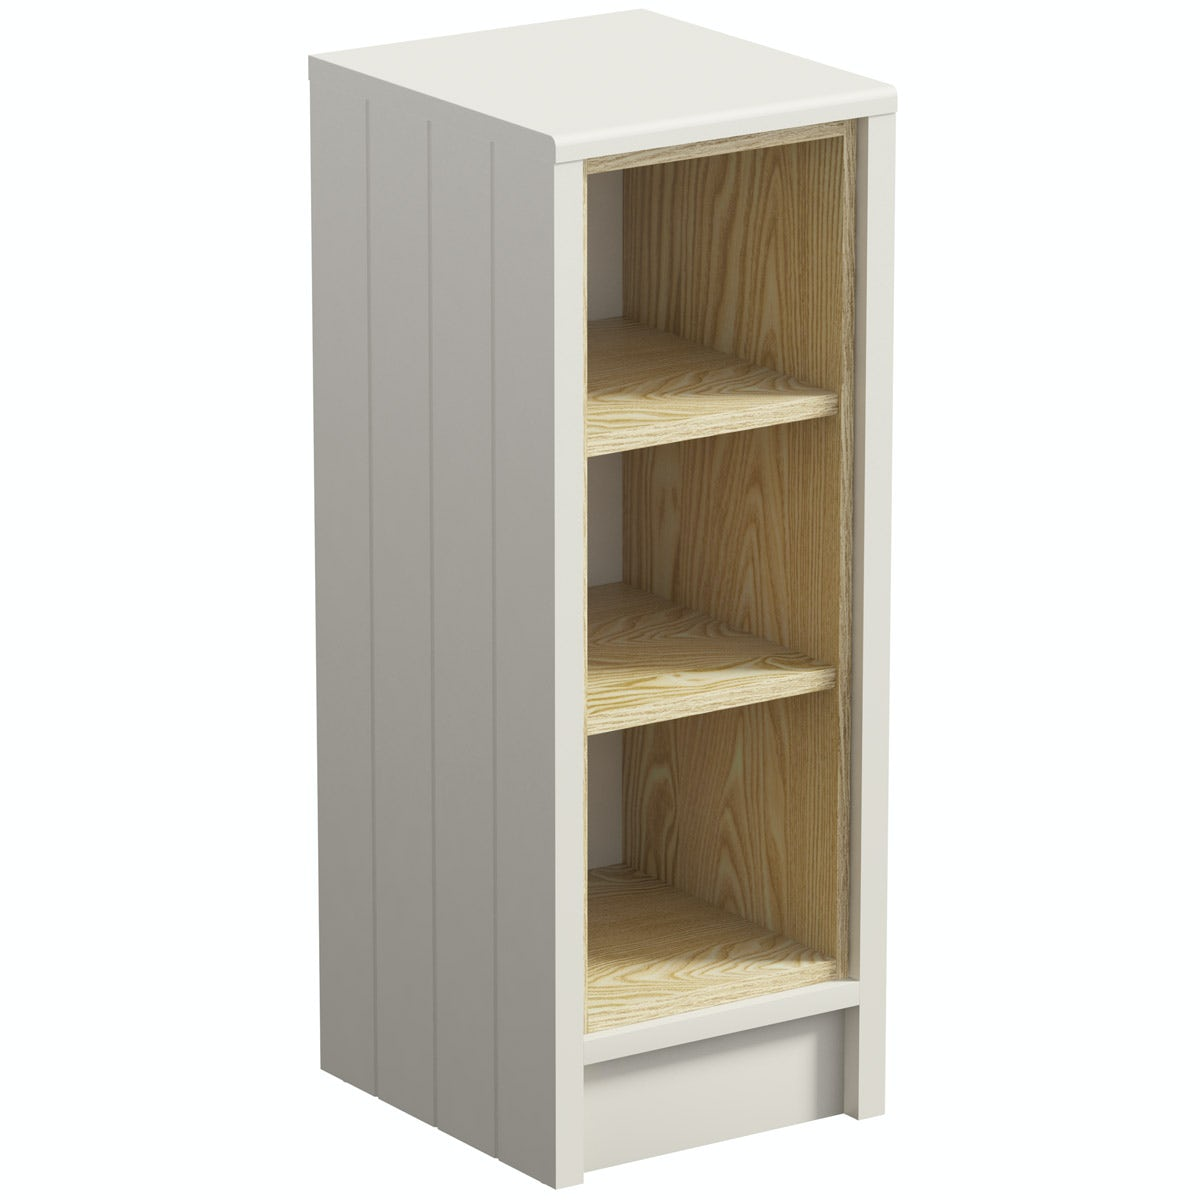 Dulwich ivory open storage unit